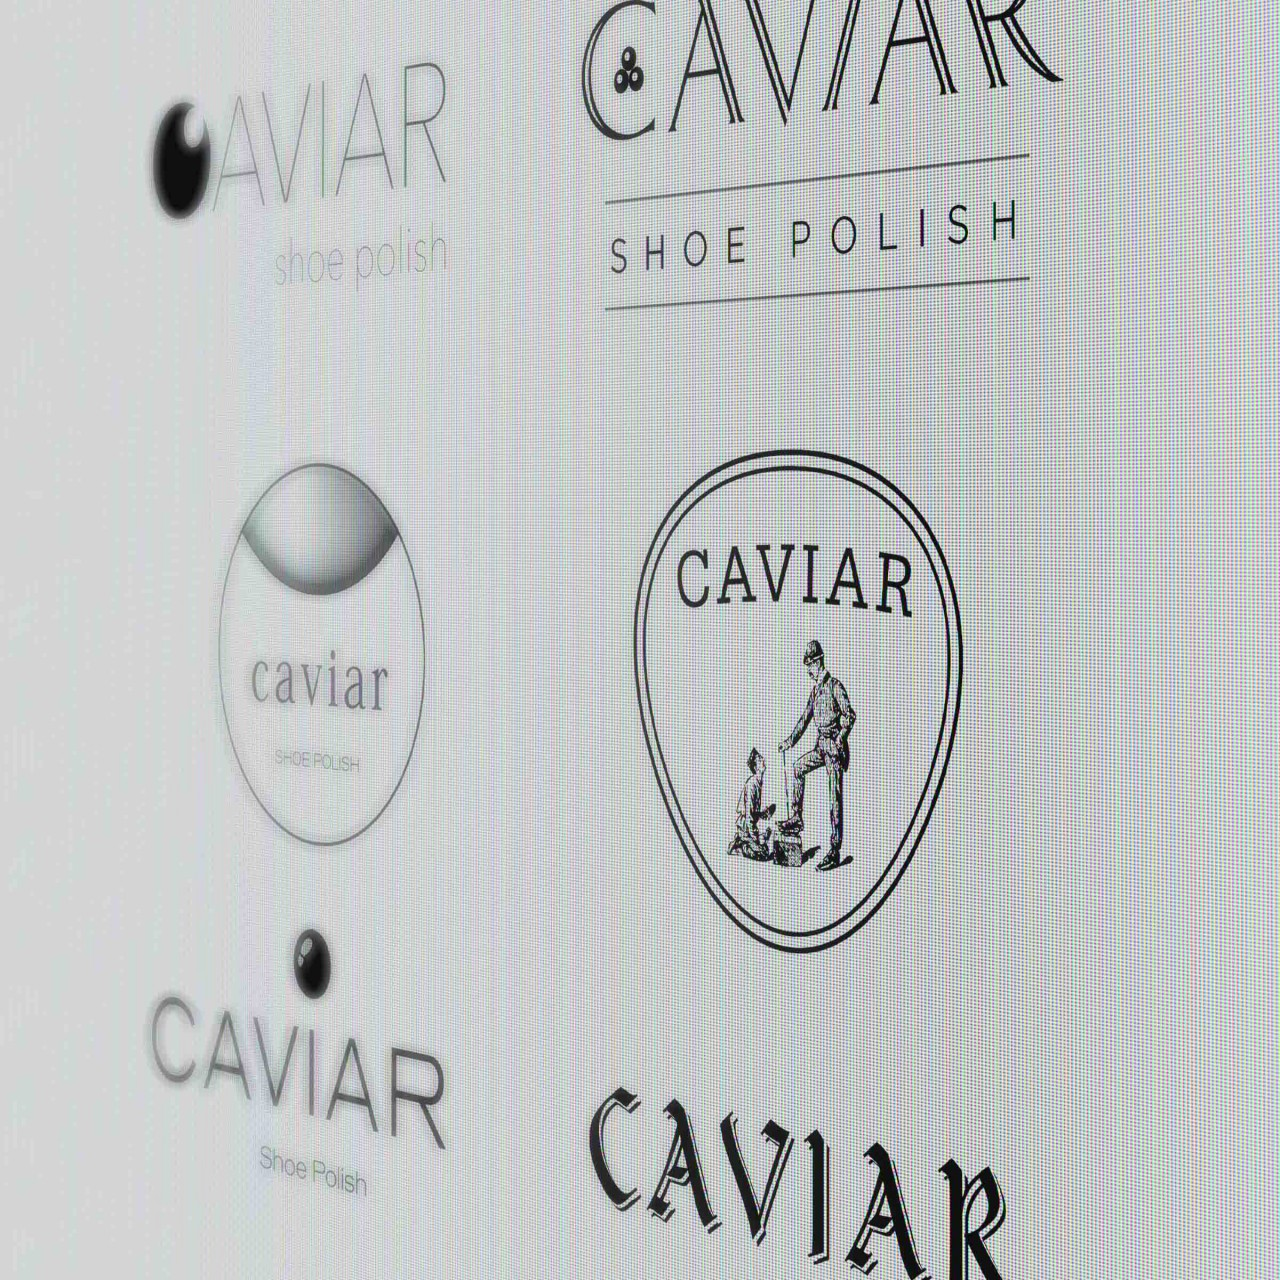 Image of Caviar Shoe Care digital logo explorations